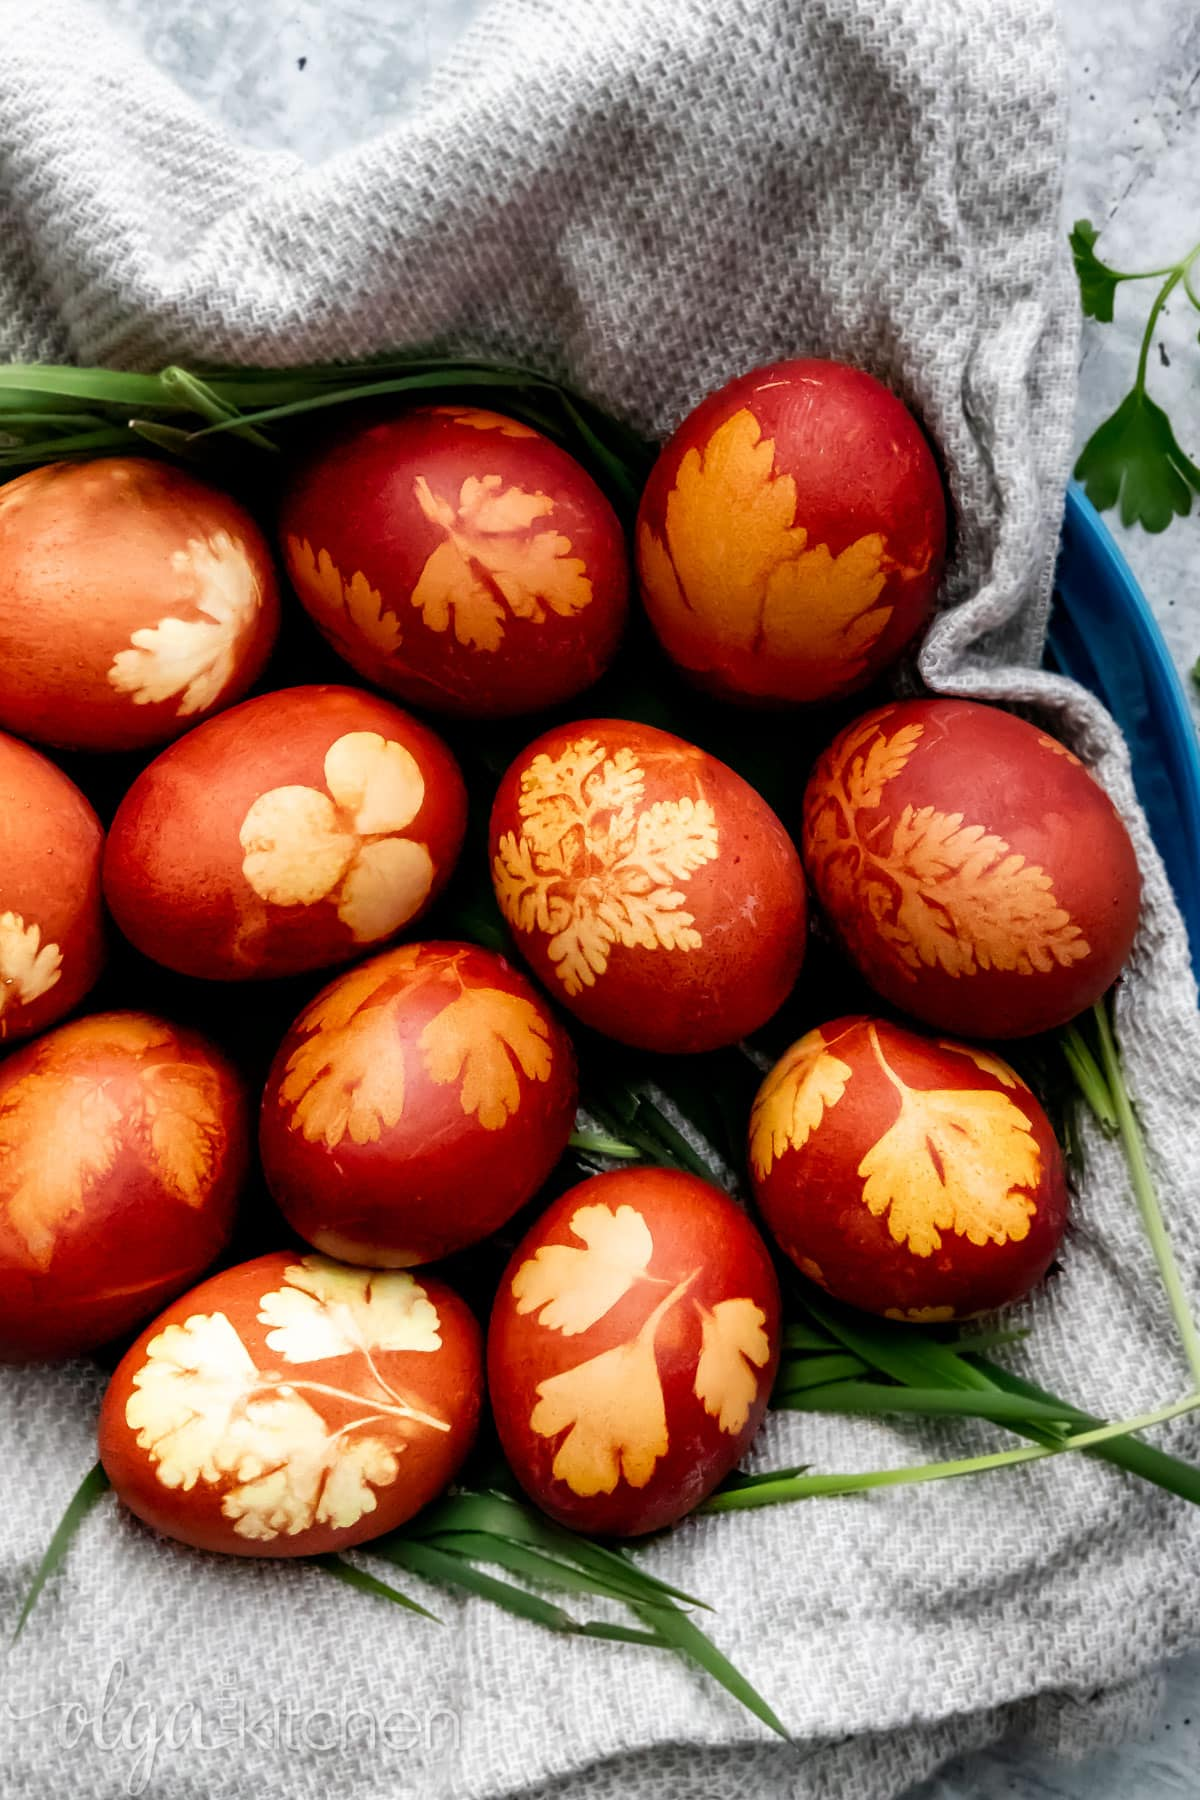 How to naturally dye Easter eggs using onion peels.